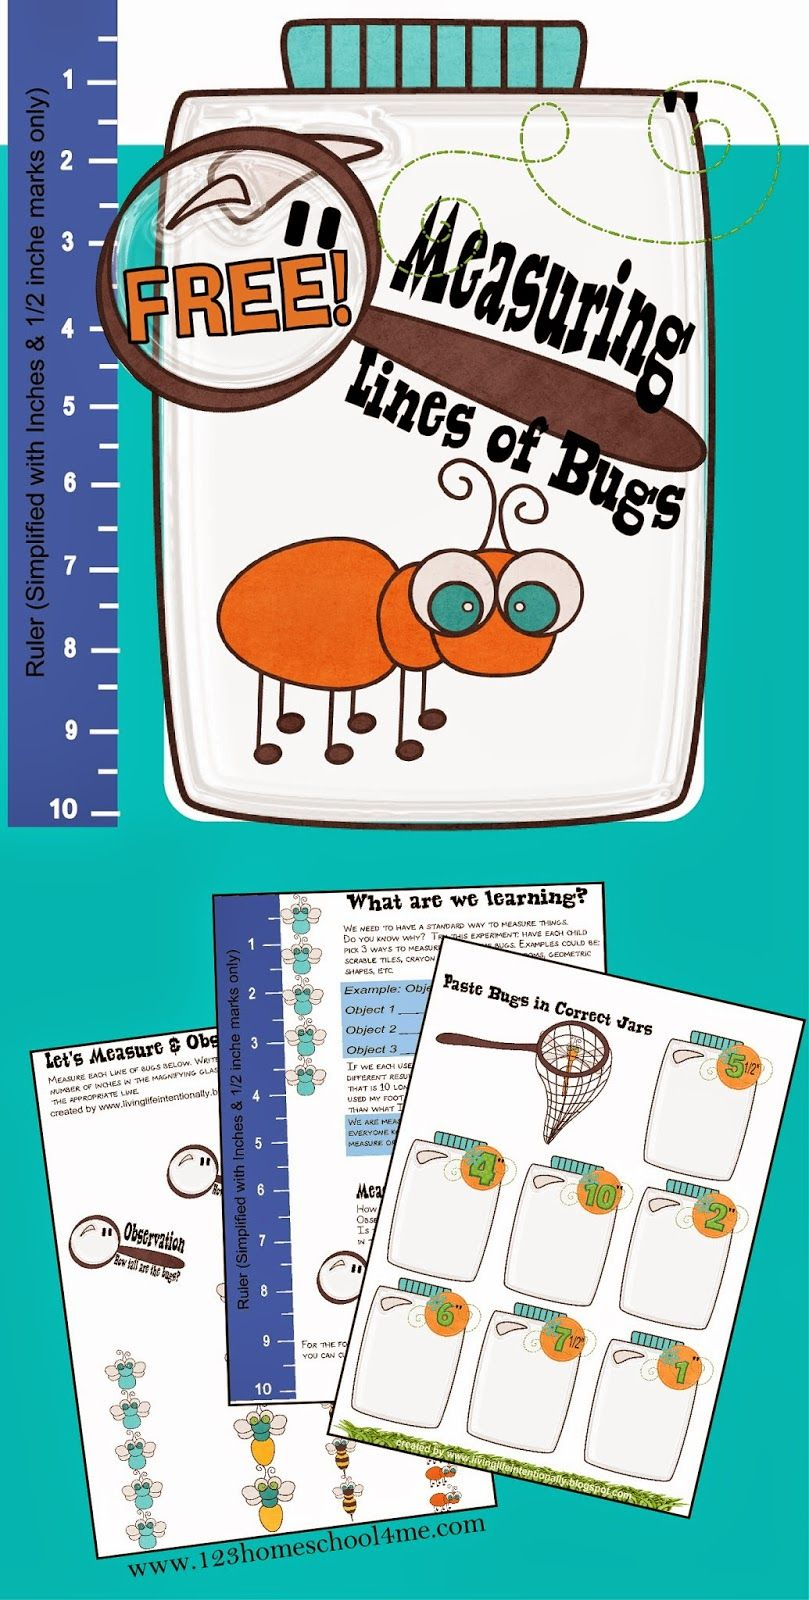 FREE Measuring Bugs | Pinterest | Free printable, Math worksheets ...